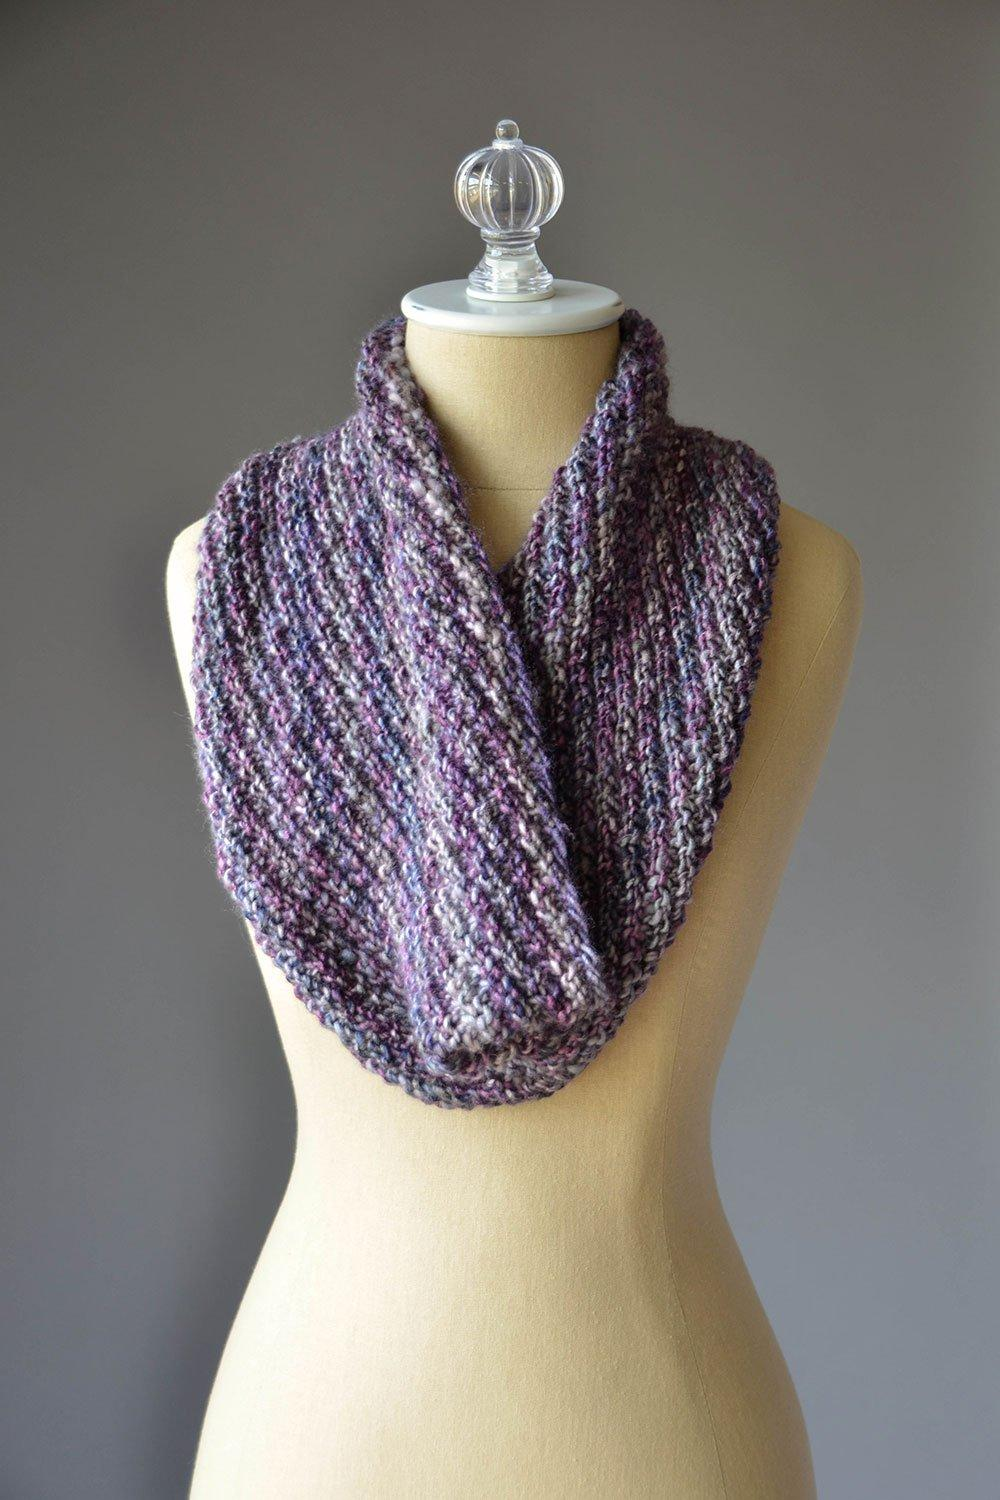 Easy knitted cowl pattern using 1 skein of Classic Shades Frenzy, a chunky yarn.